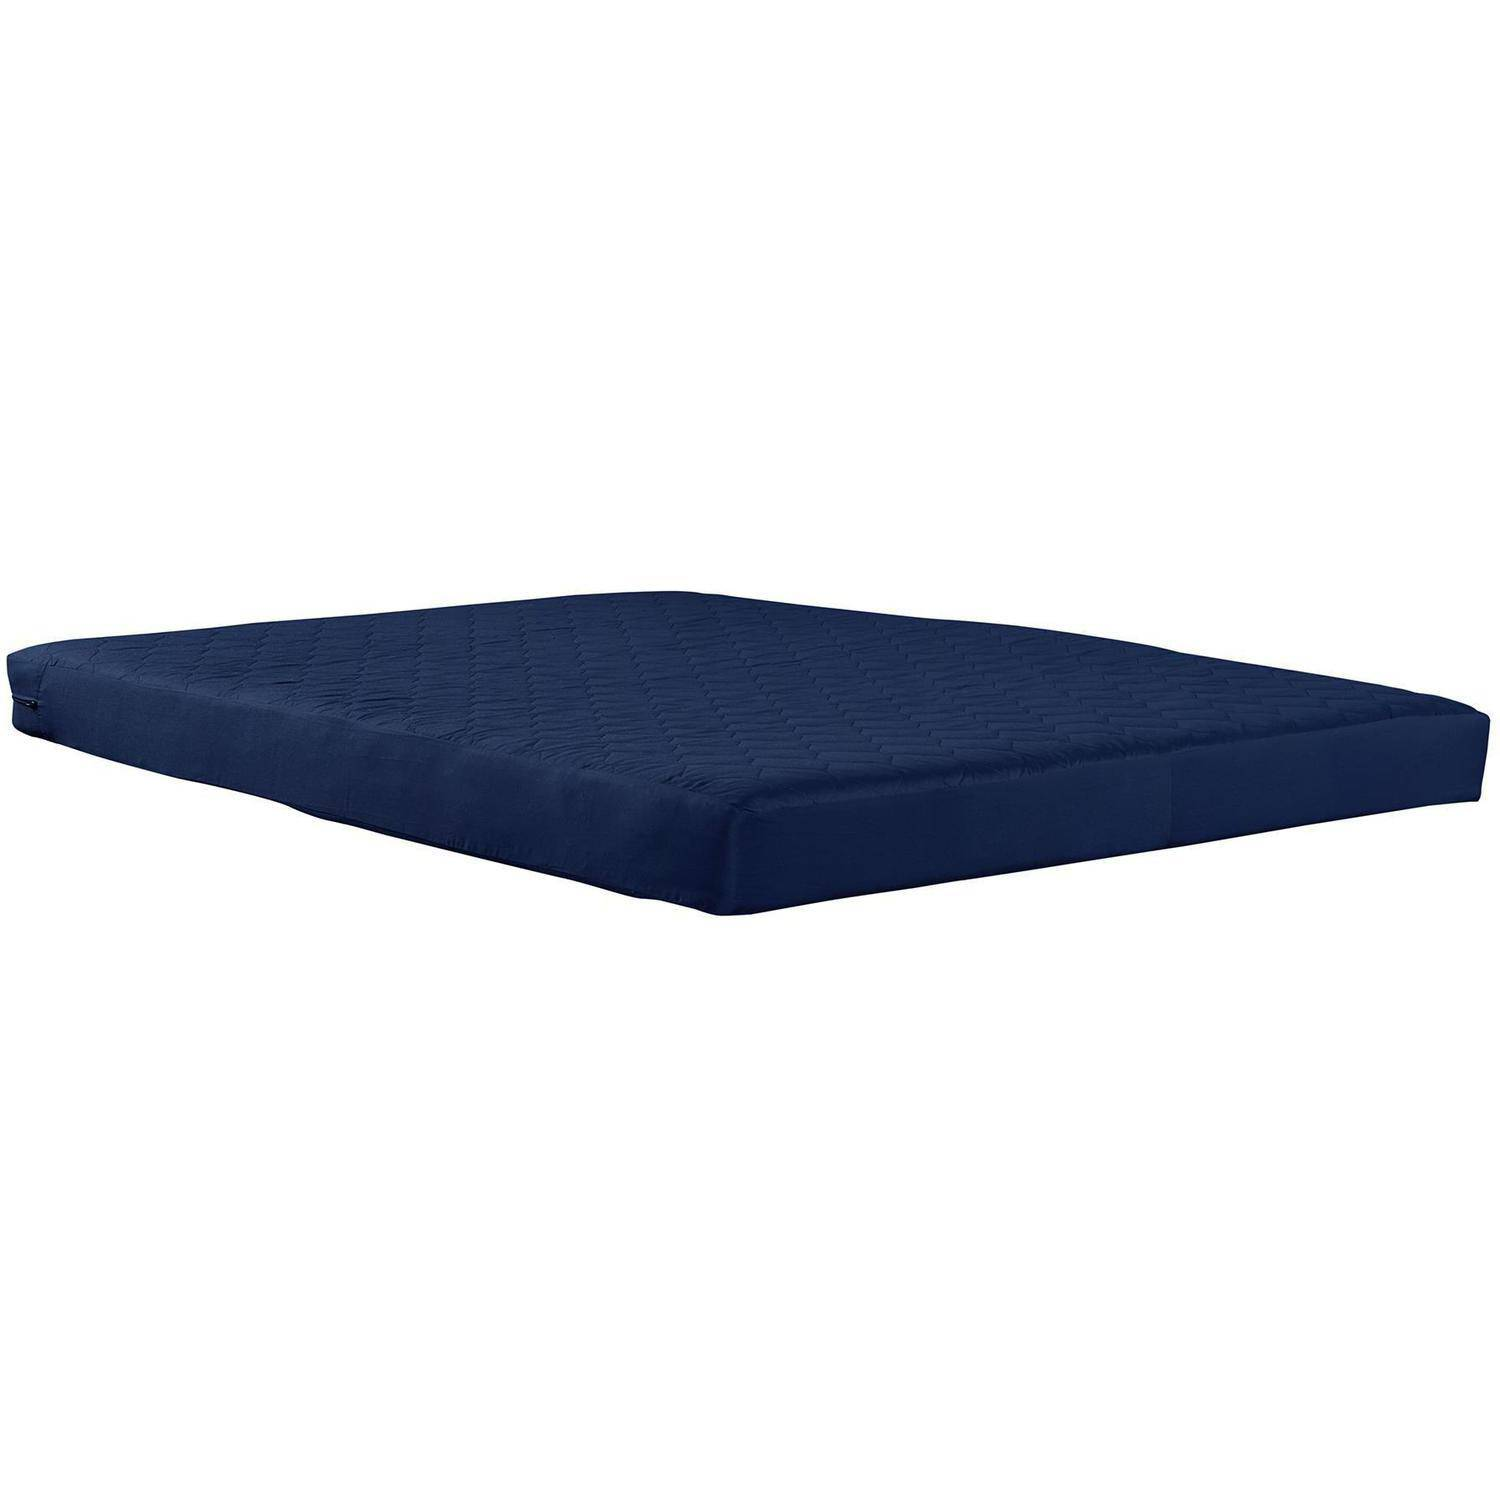 "Dorel Home 6"" Full Quilted Top Bunk Bed Mattress, Navy by Dorel Home Products"